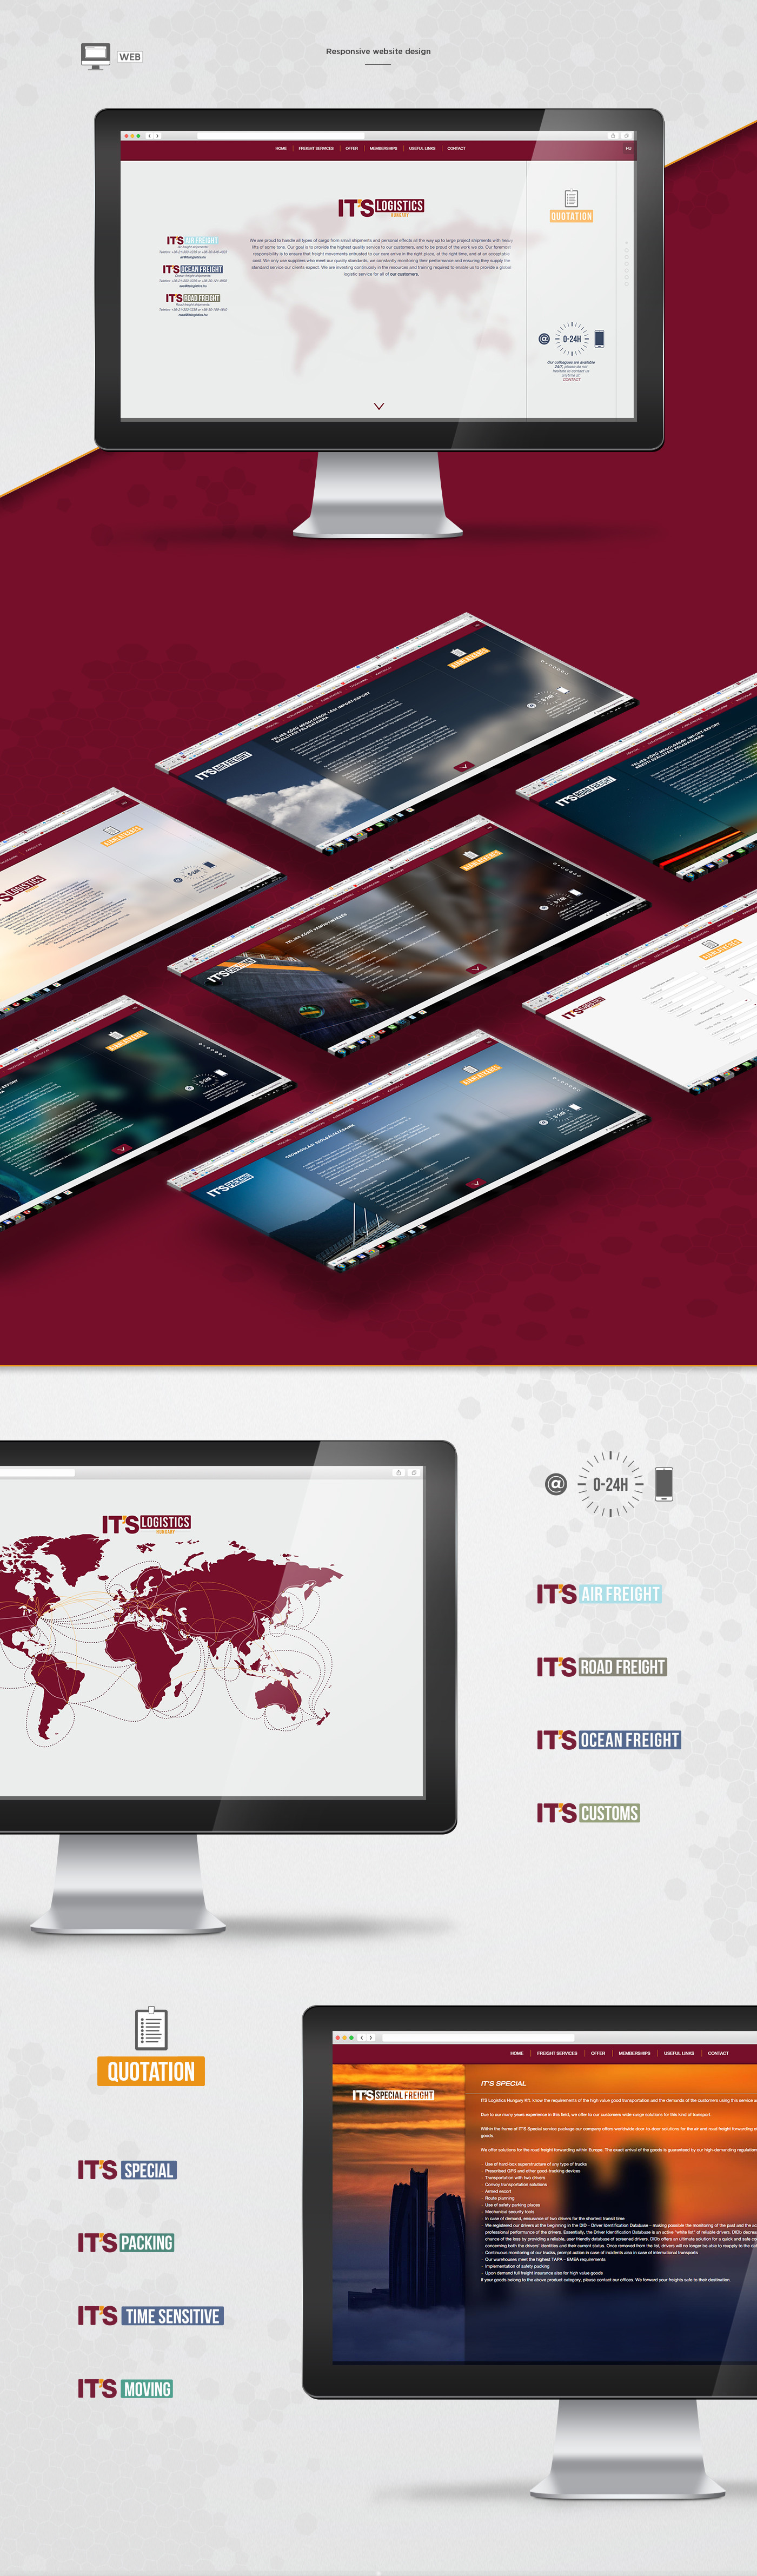 IT'S Logistics / Corporate Website Design - 1 by REMION Design Studio